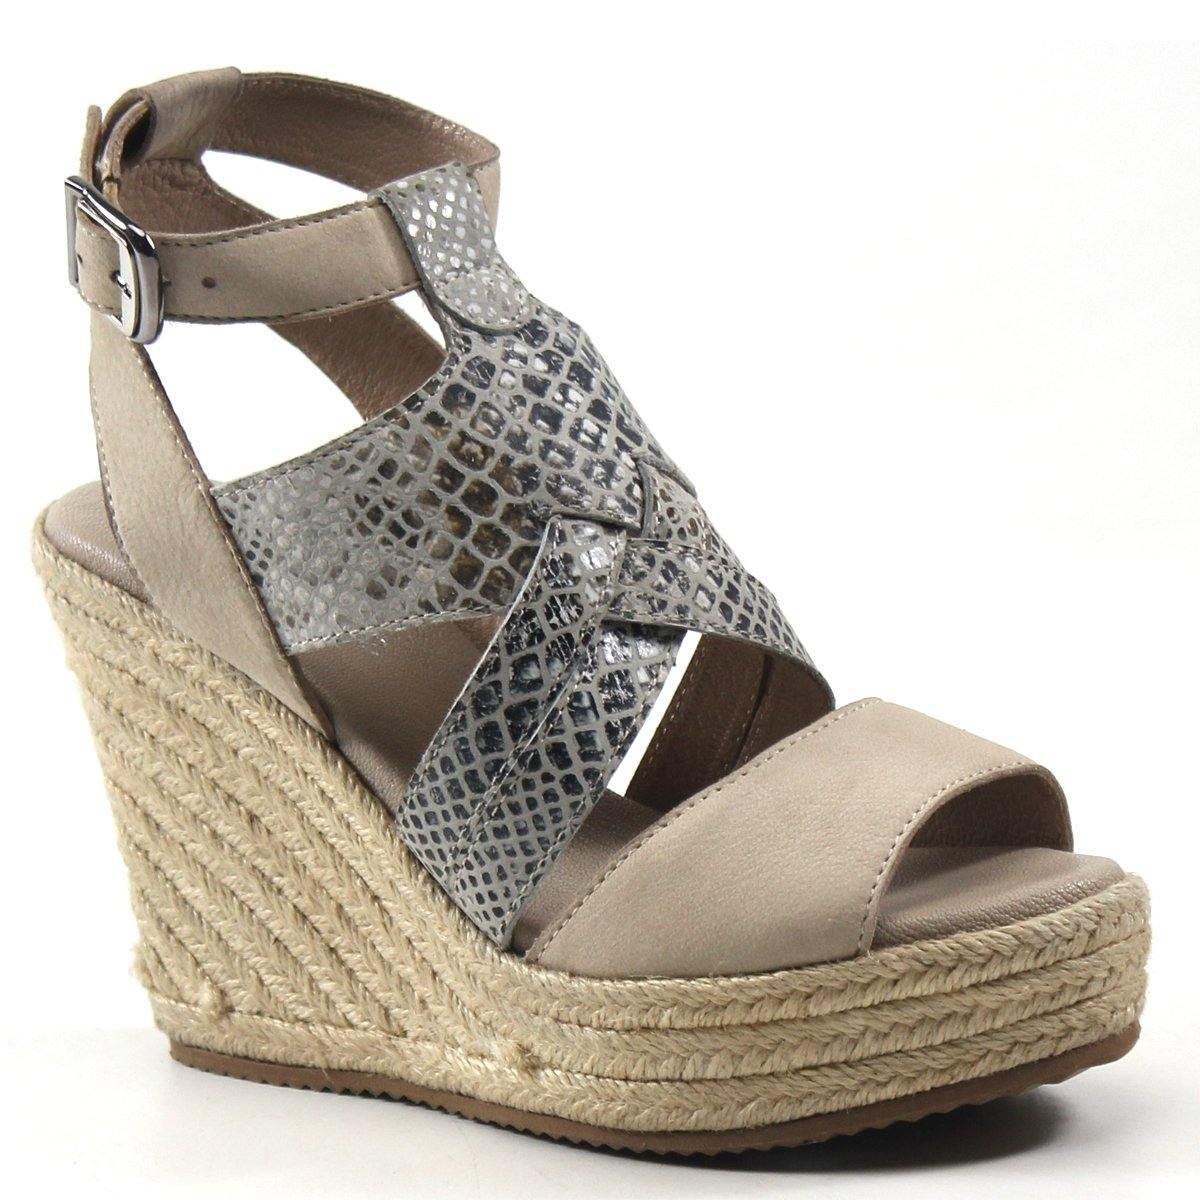 A melting pot of textures takes this espadrille-inspired platform wedge to the next level. Neutrals meet with earthy tones as snakeskin makes a bold statement creating a woven cage effect across the cutout vamp. HUG GABLE by Diba True mixes neutral pallets with natural and organic textures beautifully.